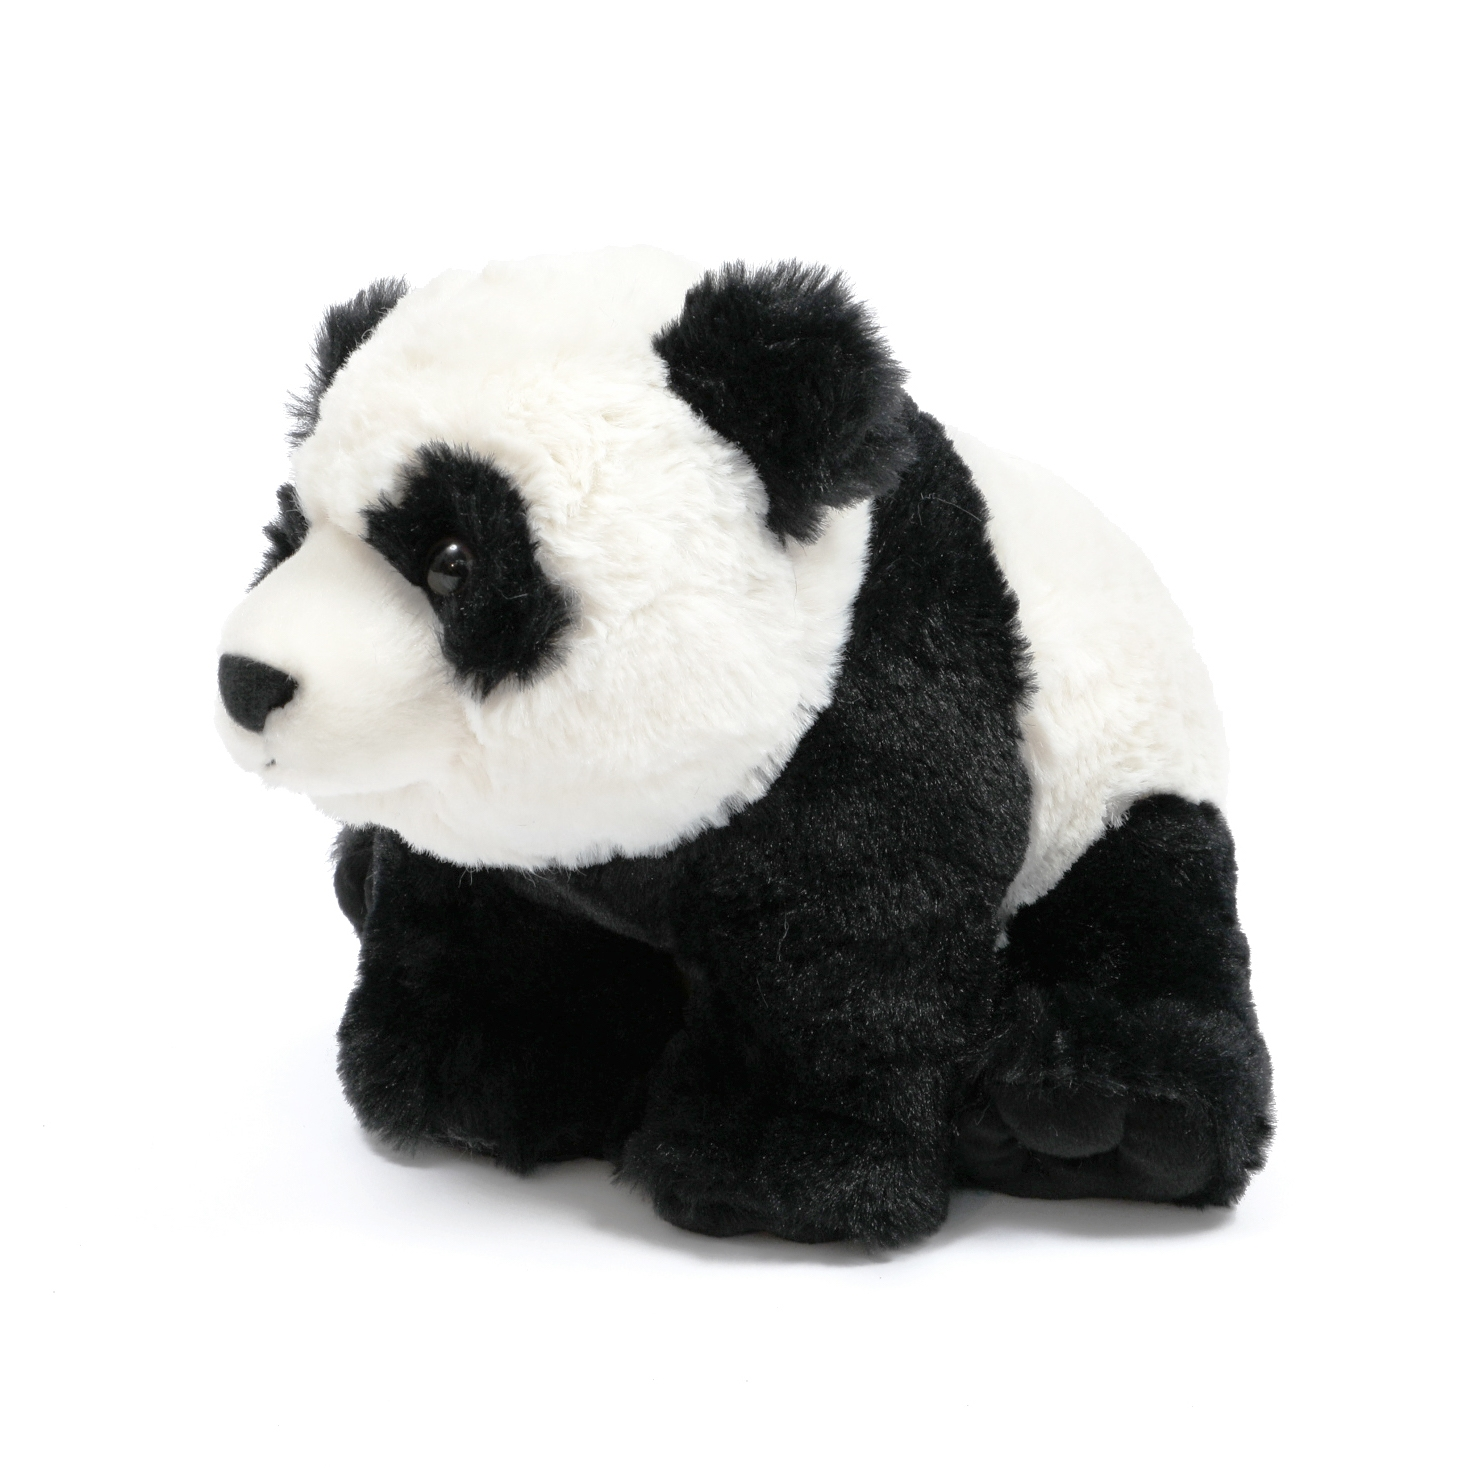 Alternate Panda Plush image 0